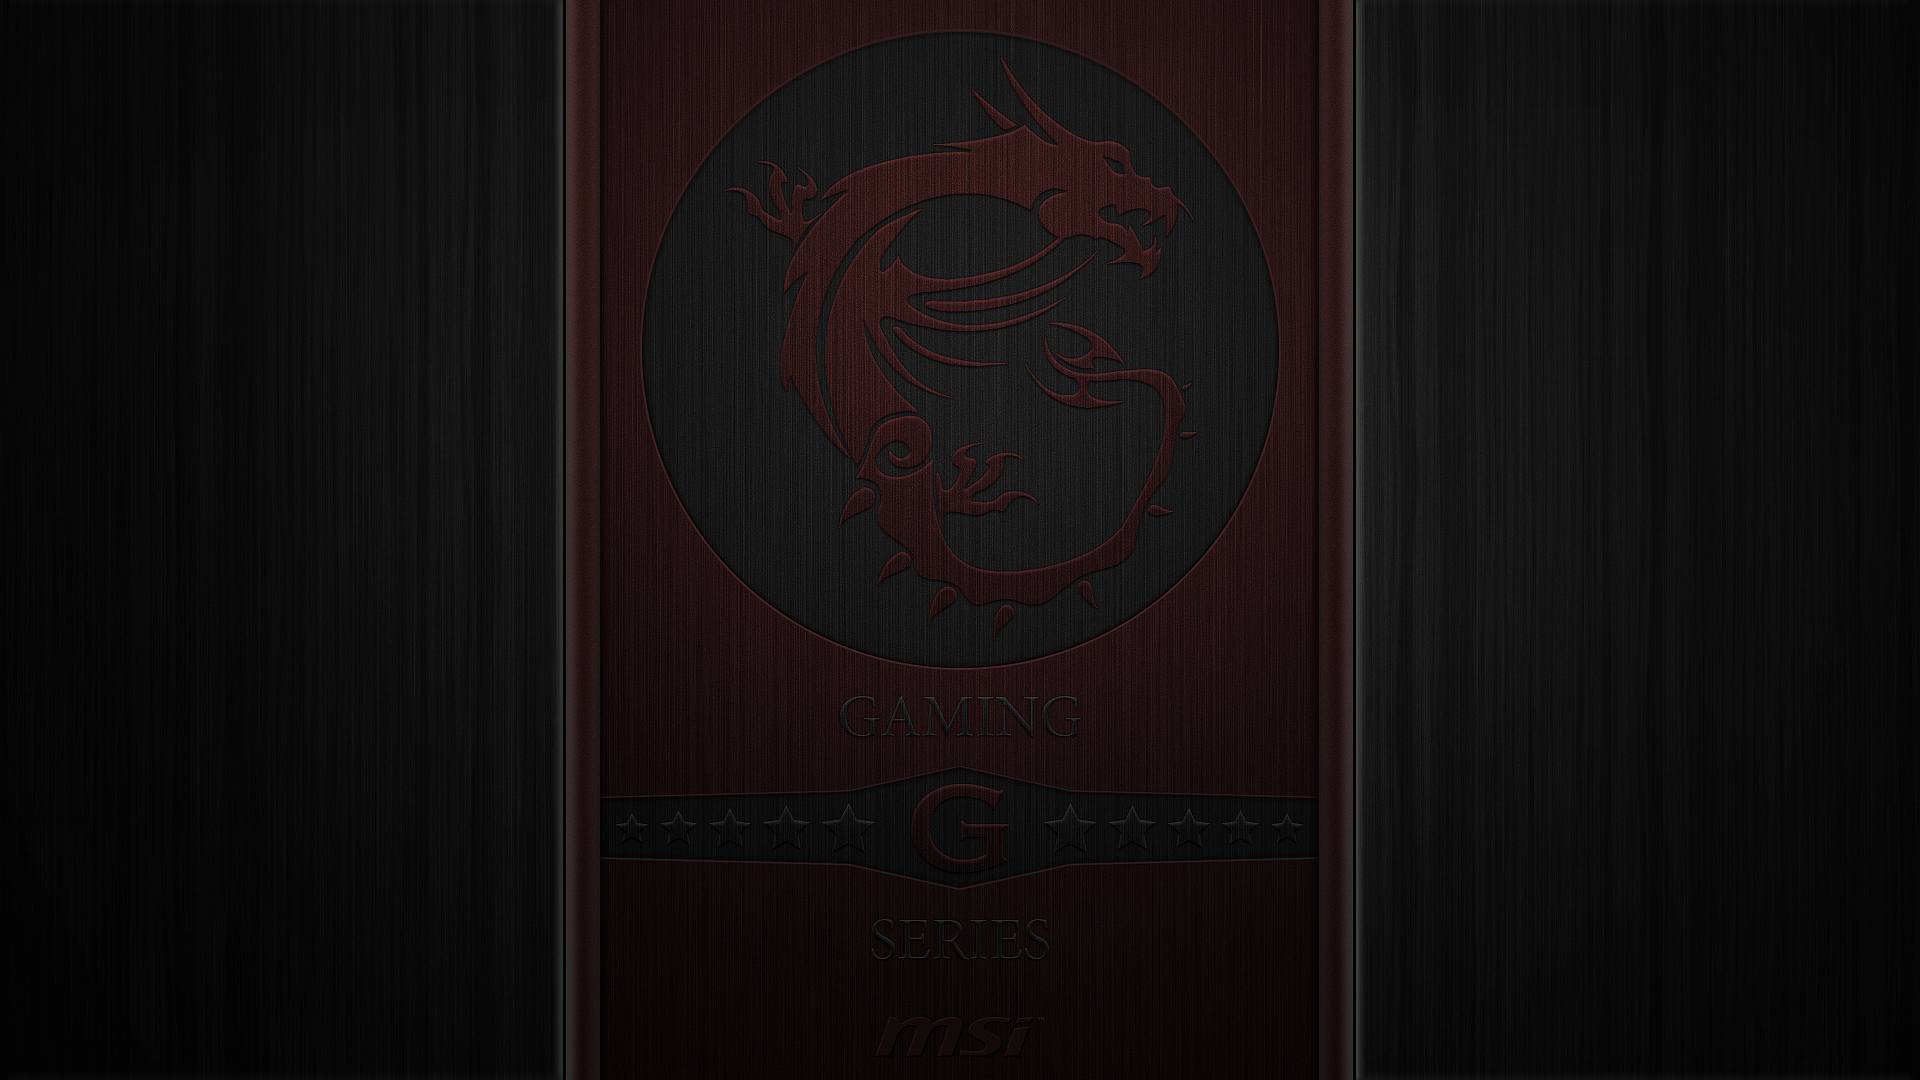 Gaming wallpaper msi gaming wallpaper voltagebd Images